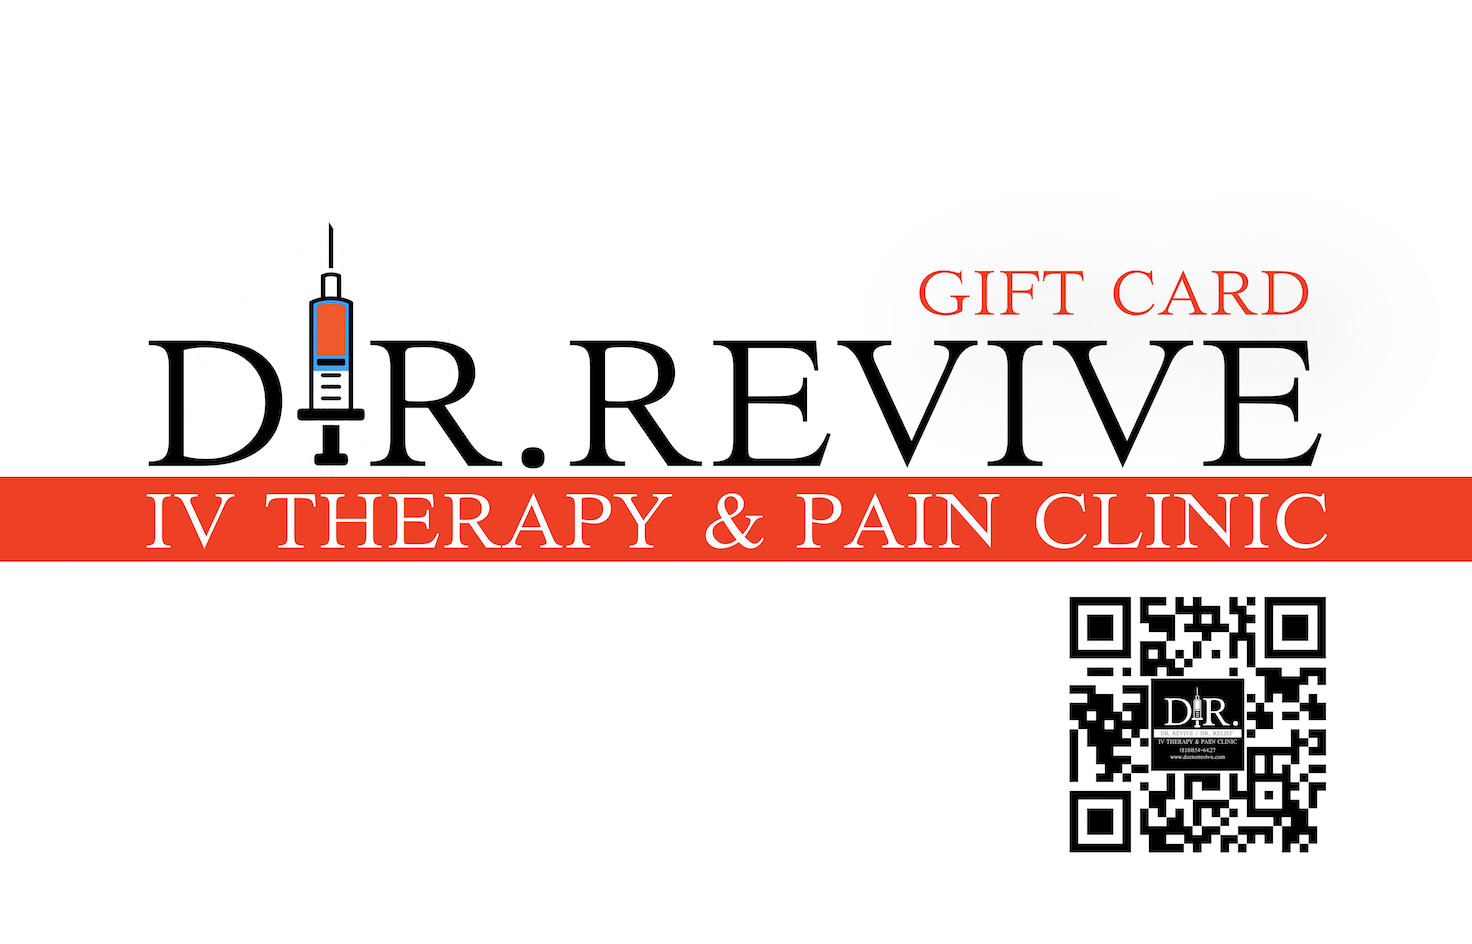 DR. Revive E-Gift card